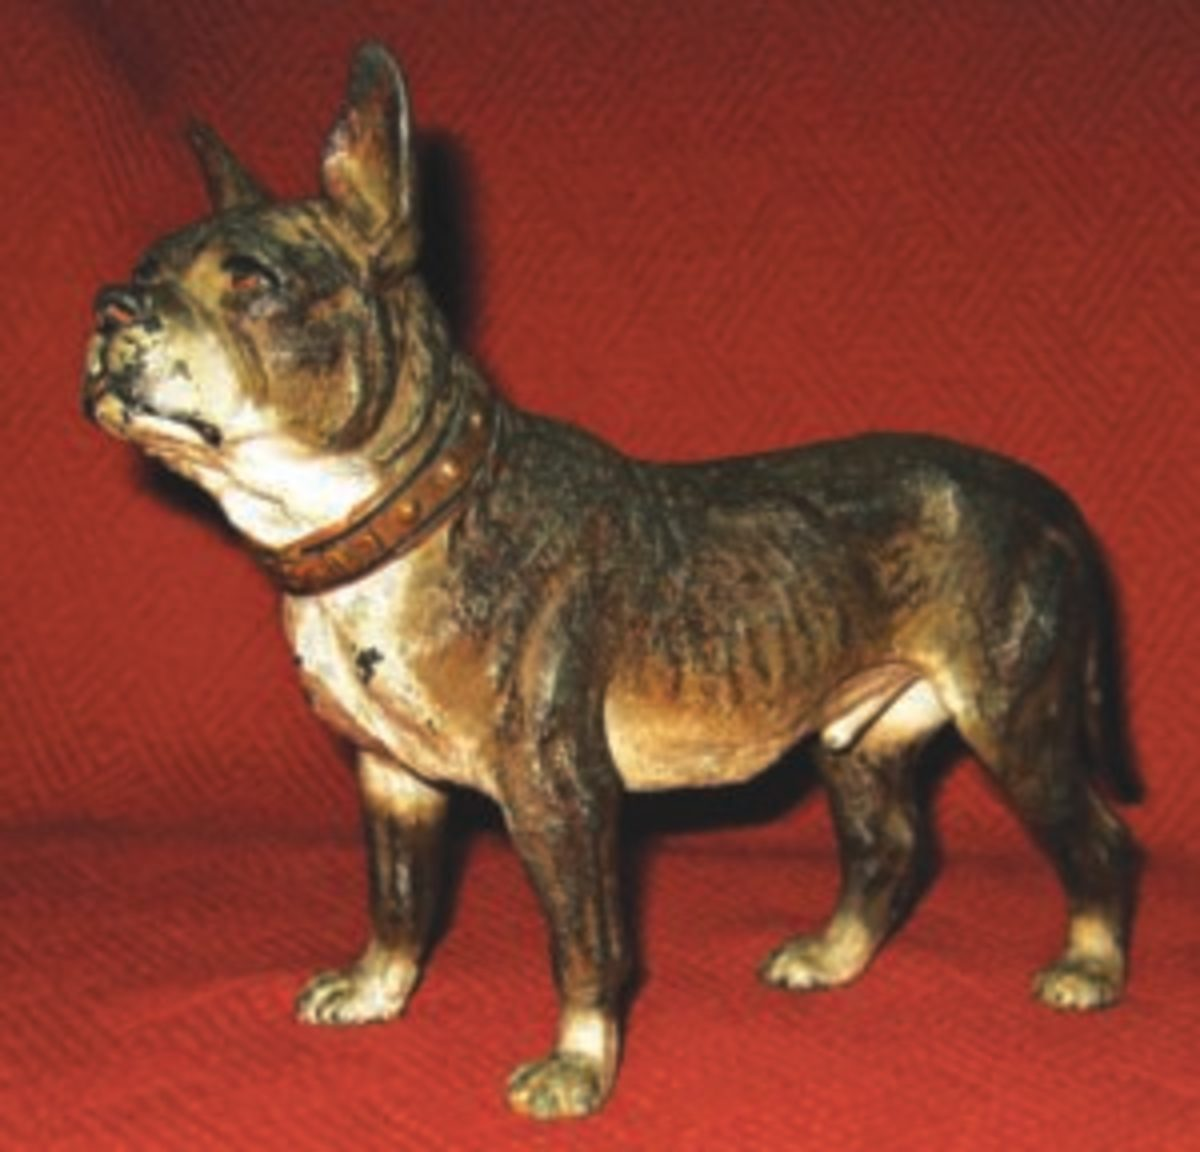 This French Bulldog is another dog in Scott Thompson's collection. Image courtesy of Scott Thompson